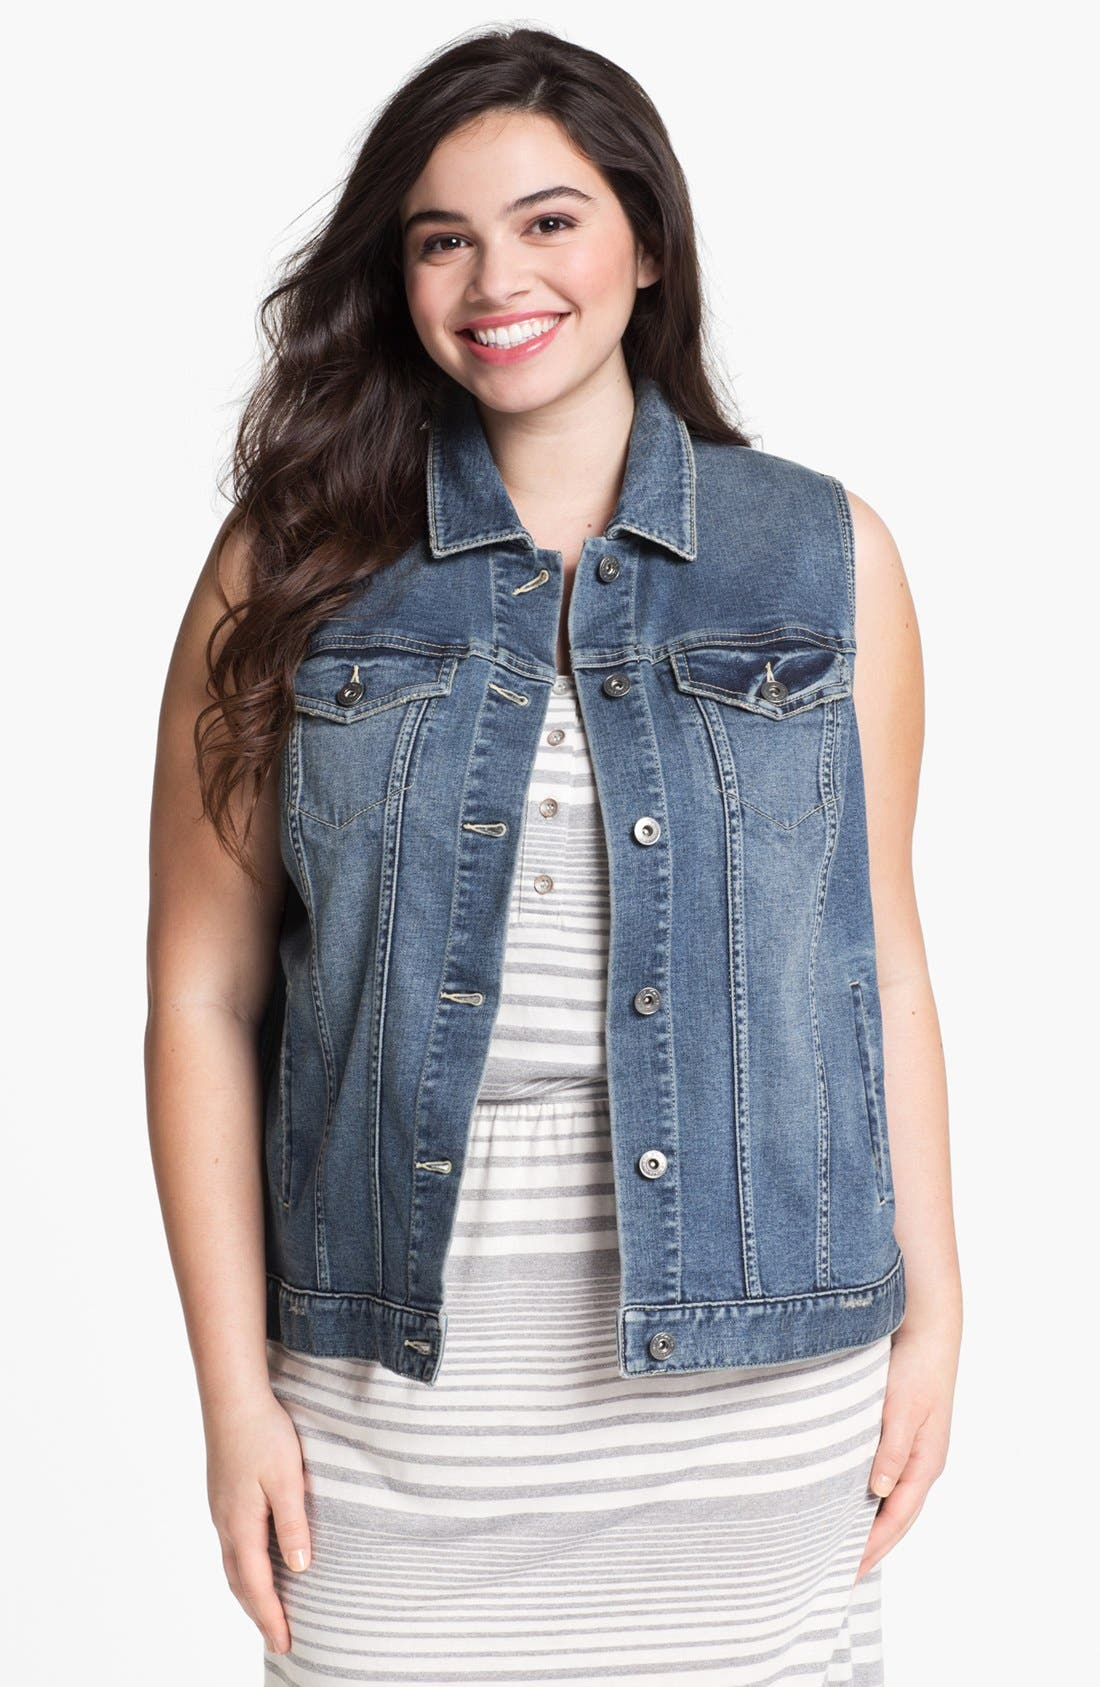 Alternate Image 1 Selected - Two by Vince Camuto Denim Vest (Plus Size)